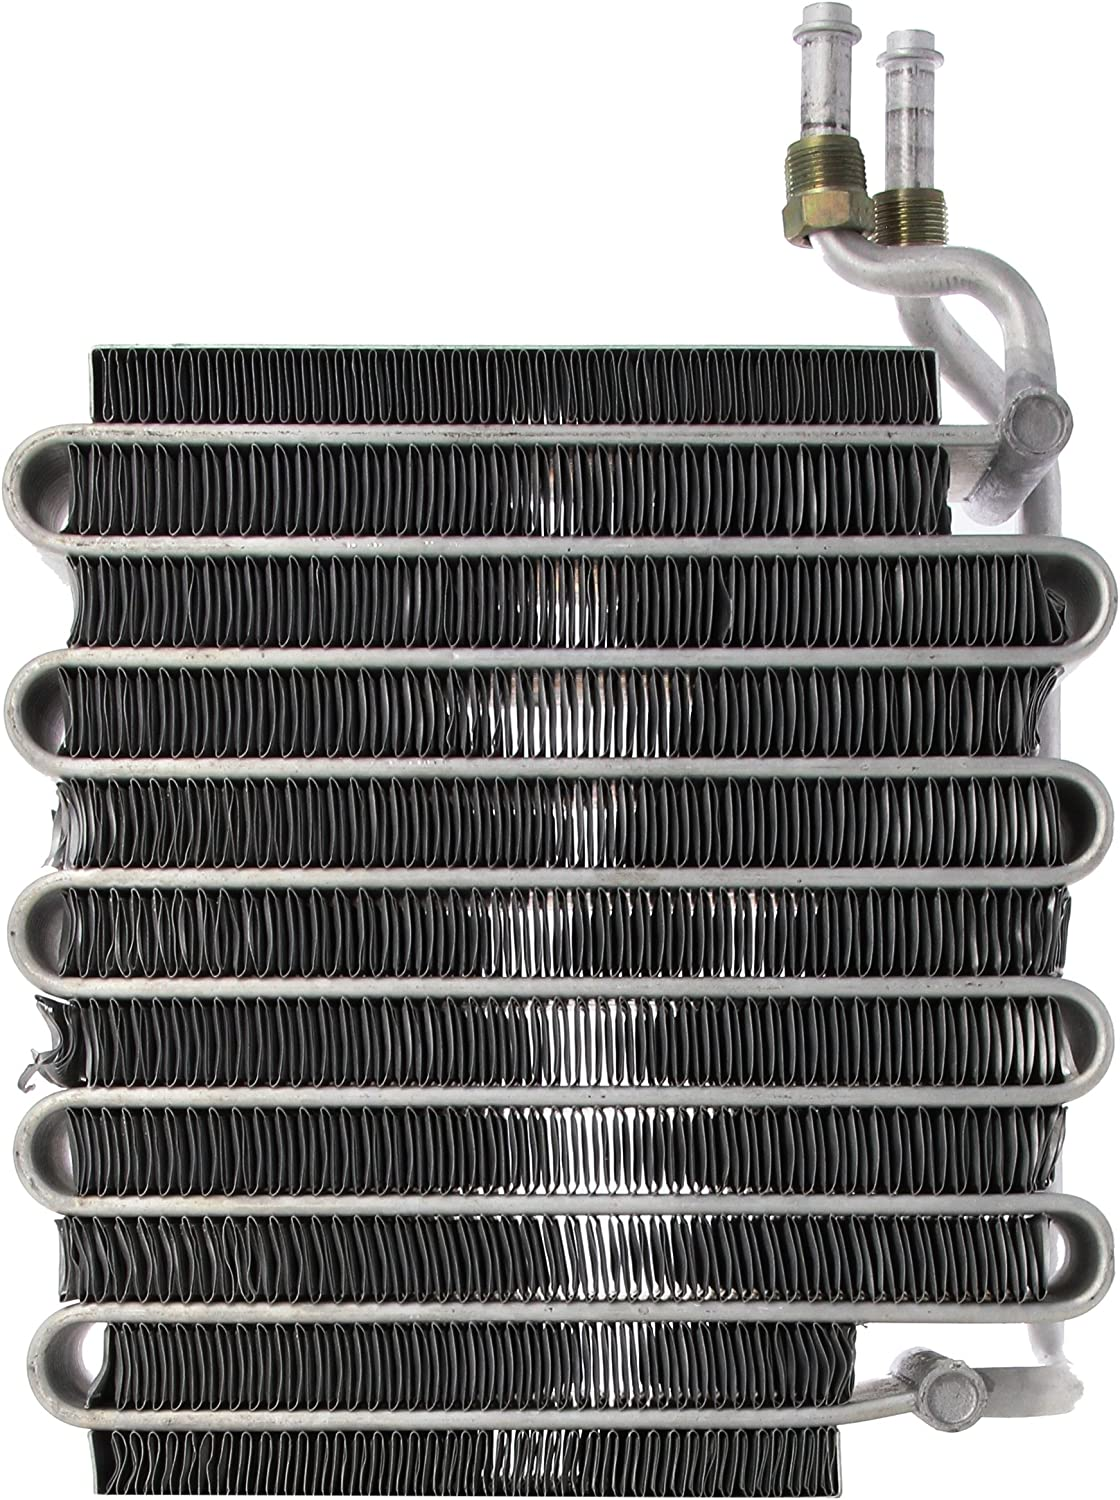 Four Seasons 54613 Evaporator Core